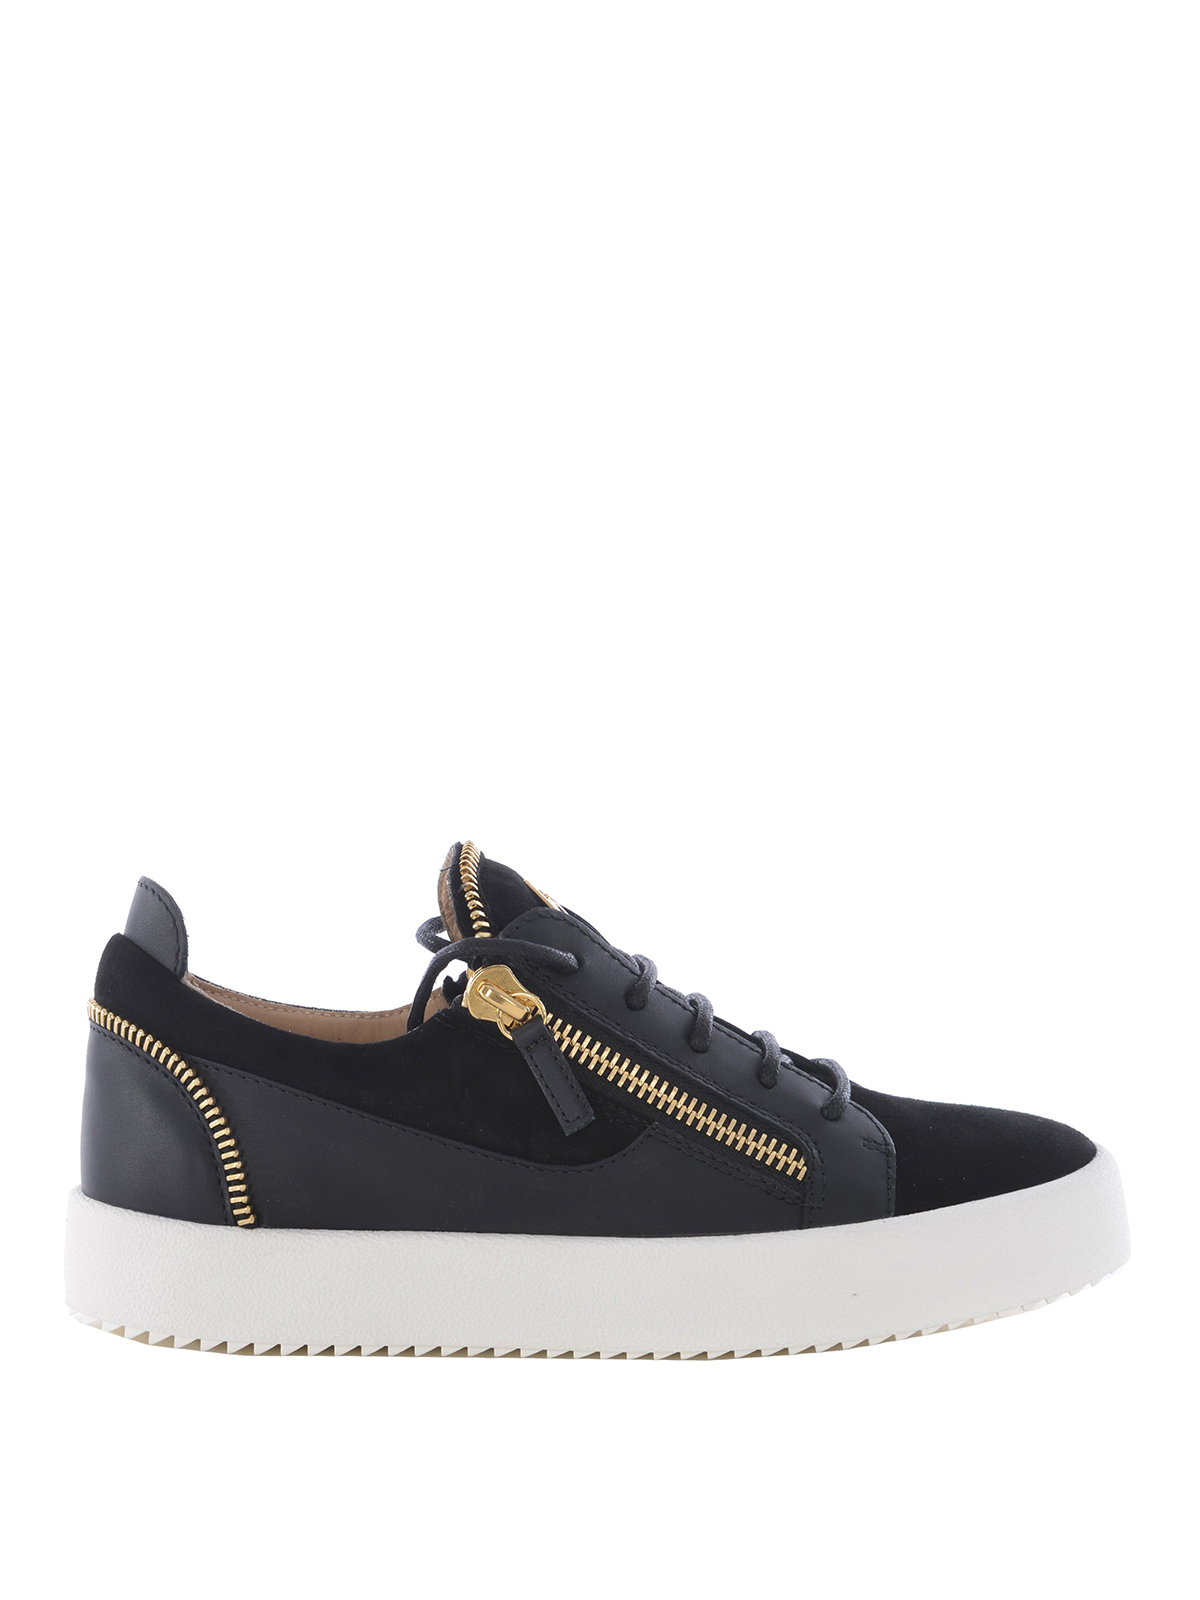 52bb3331440a1 Giuseppe Zanotti - Kirk Low zip details black sneakers - trainers ...